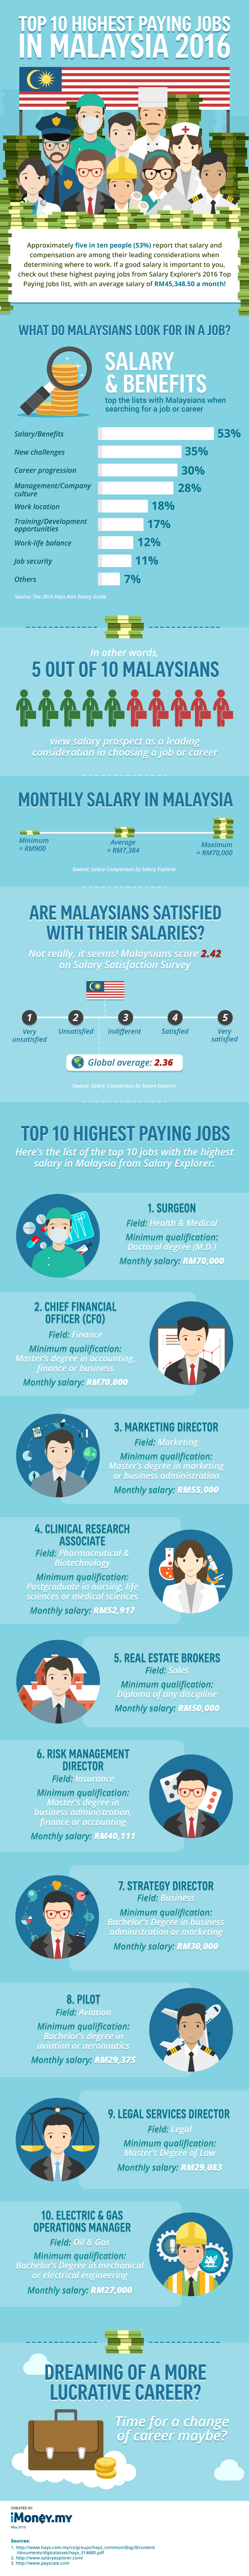 Top 10 Jobs In Malaysia That Pay The Highest Salary In 2016 Imoney